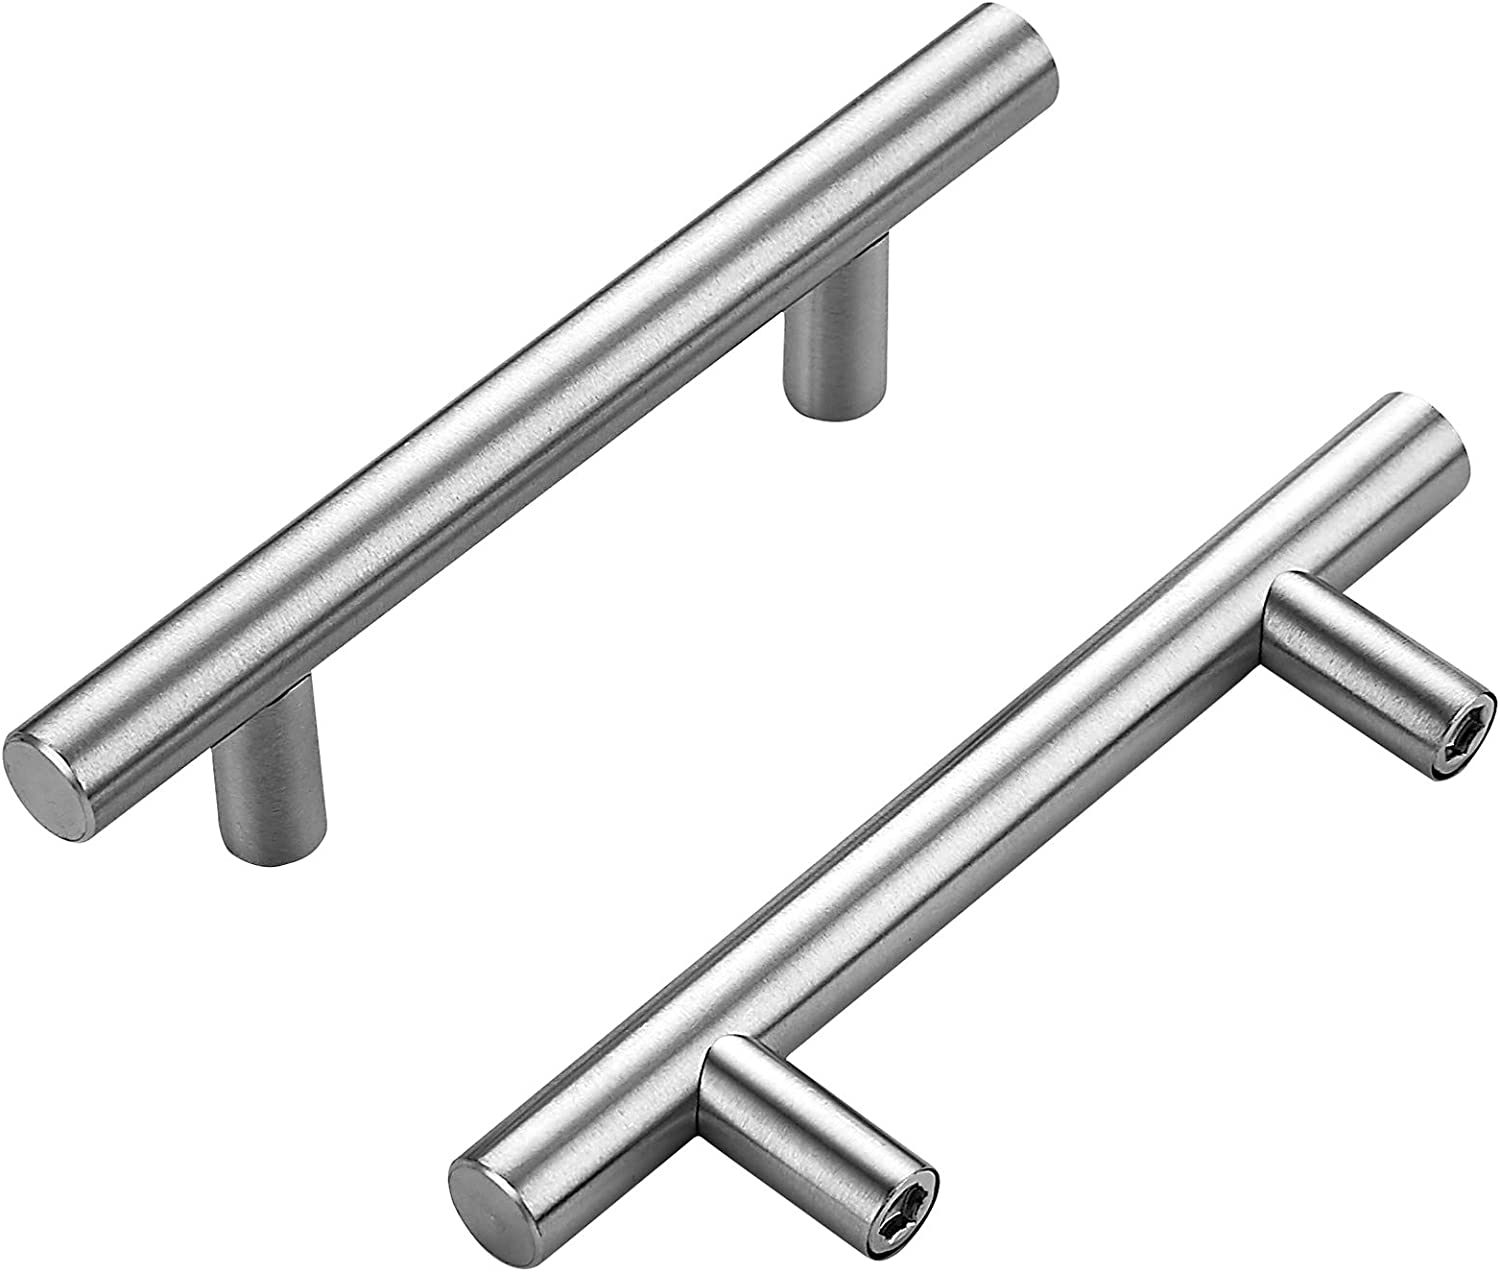 5 Inch Cabinet Award Pulls Brushed - Nickel Product Handles Exper Home